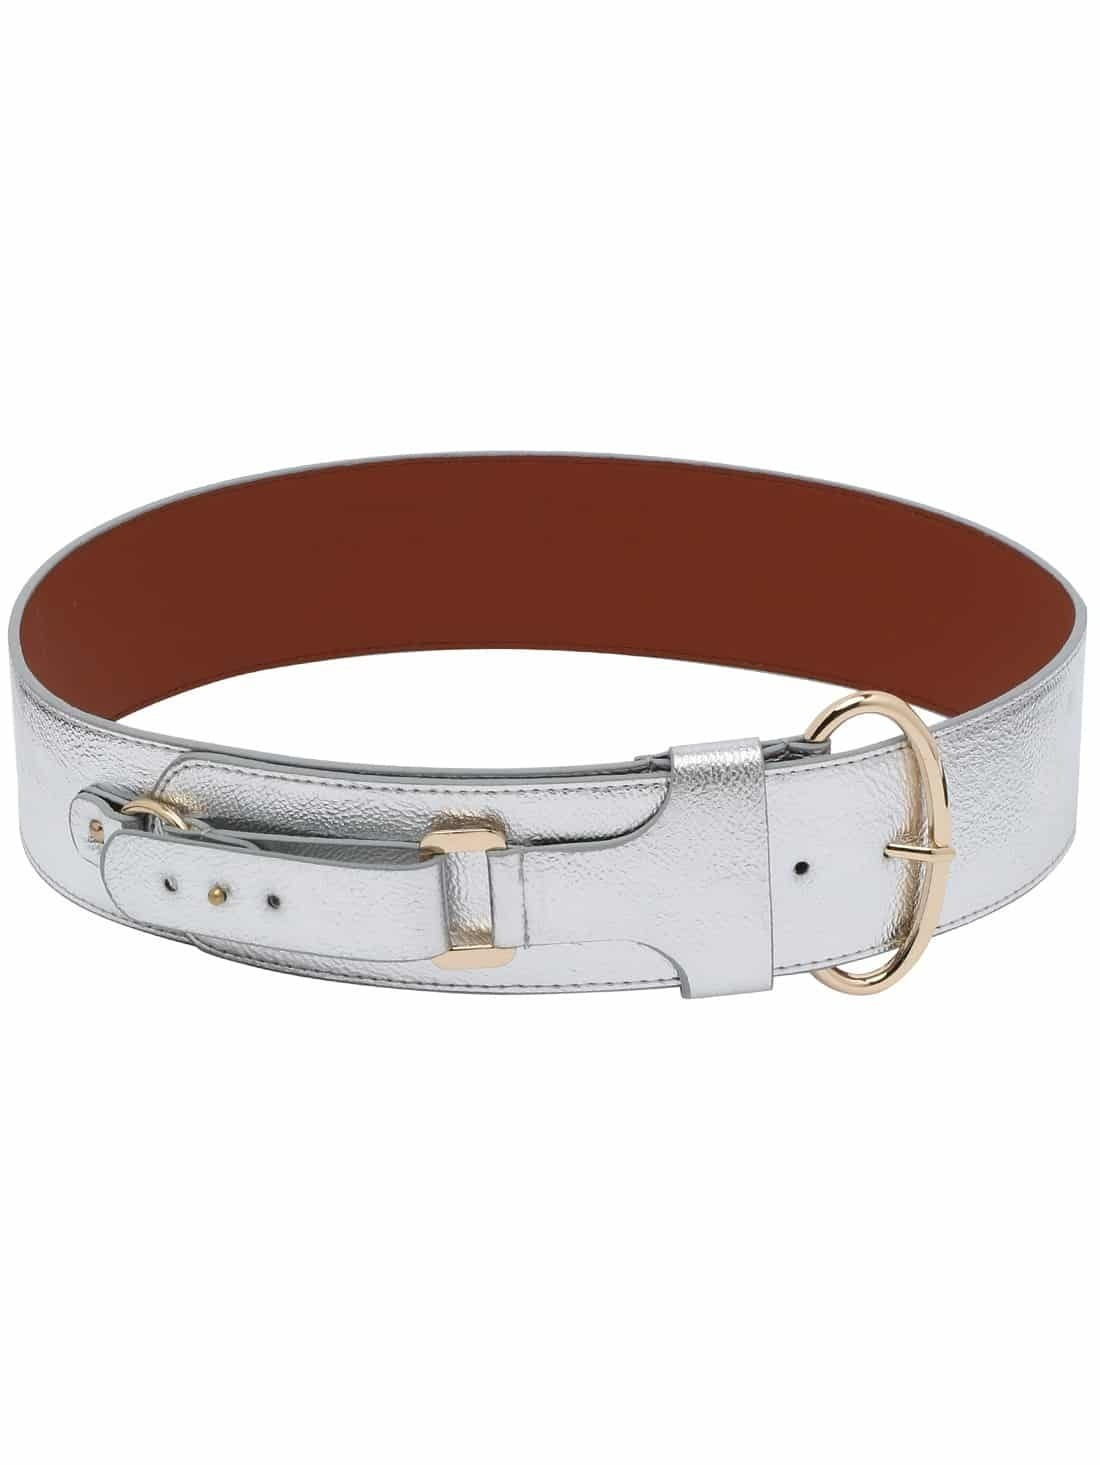 metallic silver oval rring buckle wide belt